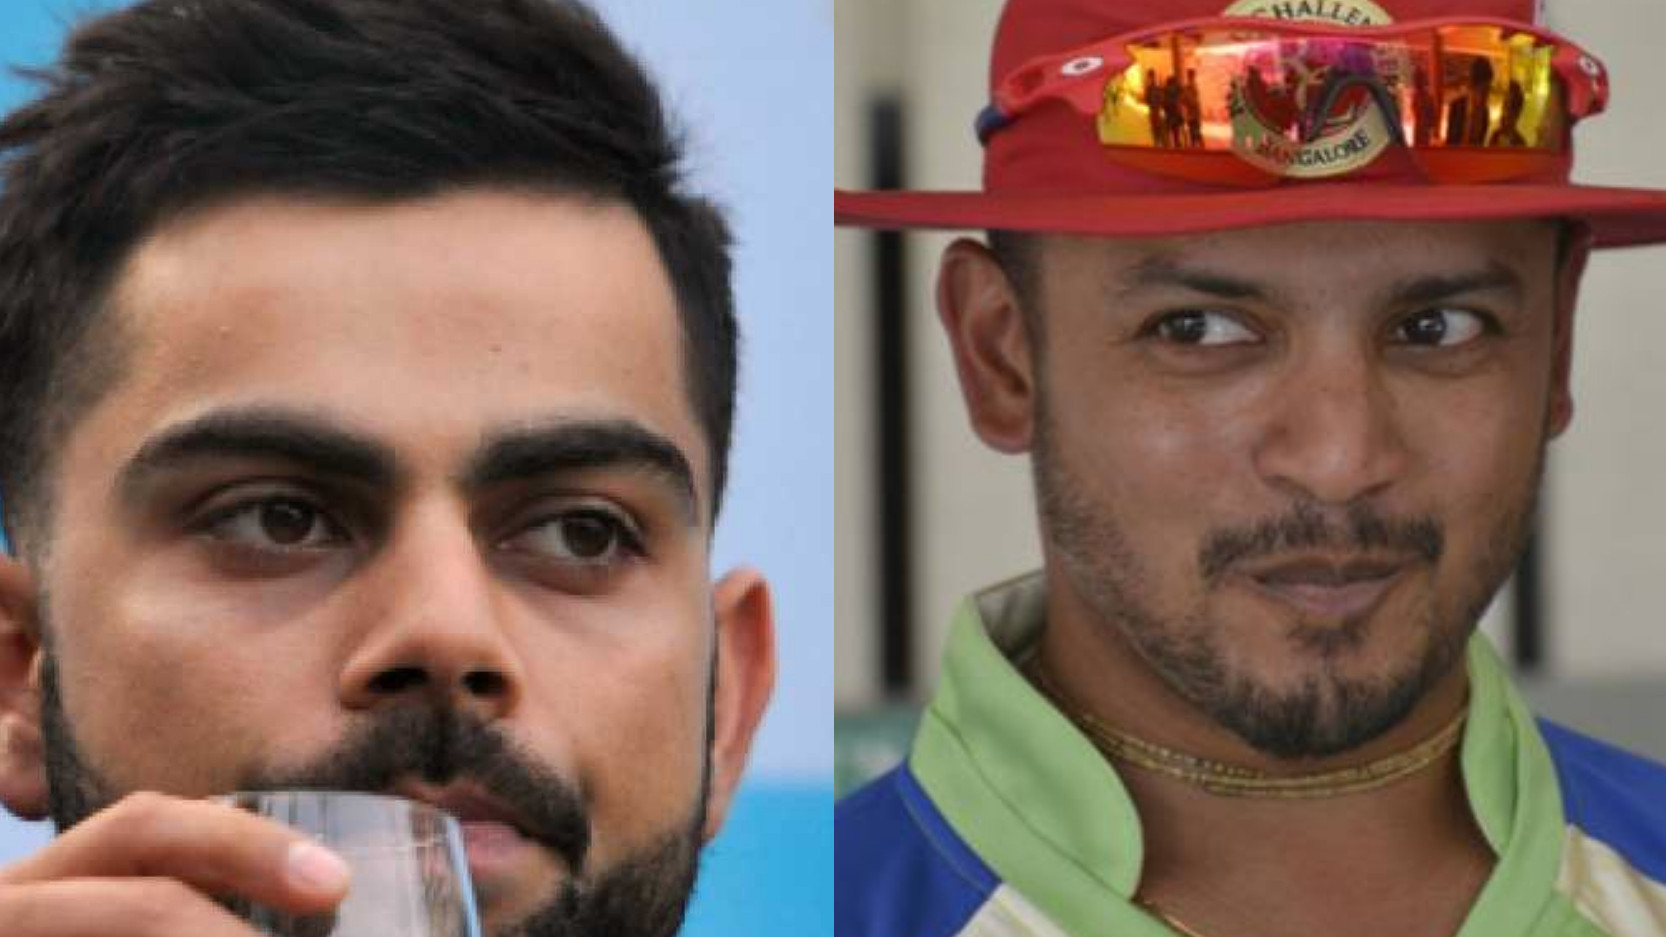 IND v WI 2018: Rest Virat Kohli in Hyderabad Test and give chance to Mayank Agarwal, says Murali Kartik